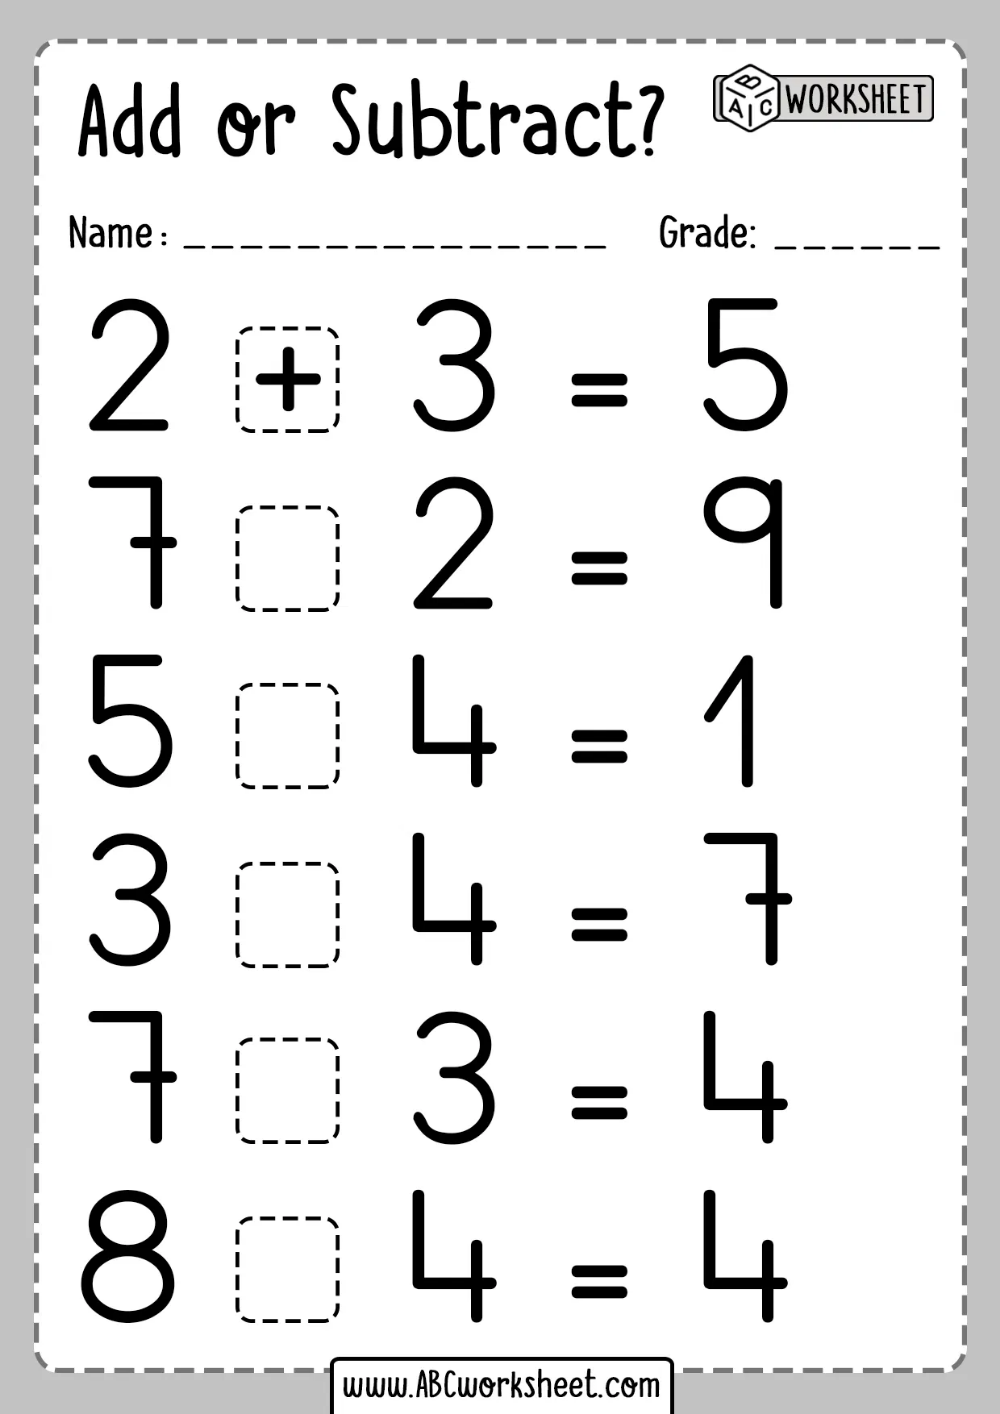 Combined Addition And Subtraction Worksheet Addition And Subtraction Worksheets Kindergarten Subtraction Worksheets Subtraction Worksheets [ 1414 x 1000 Pixel ]